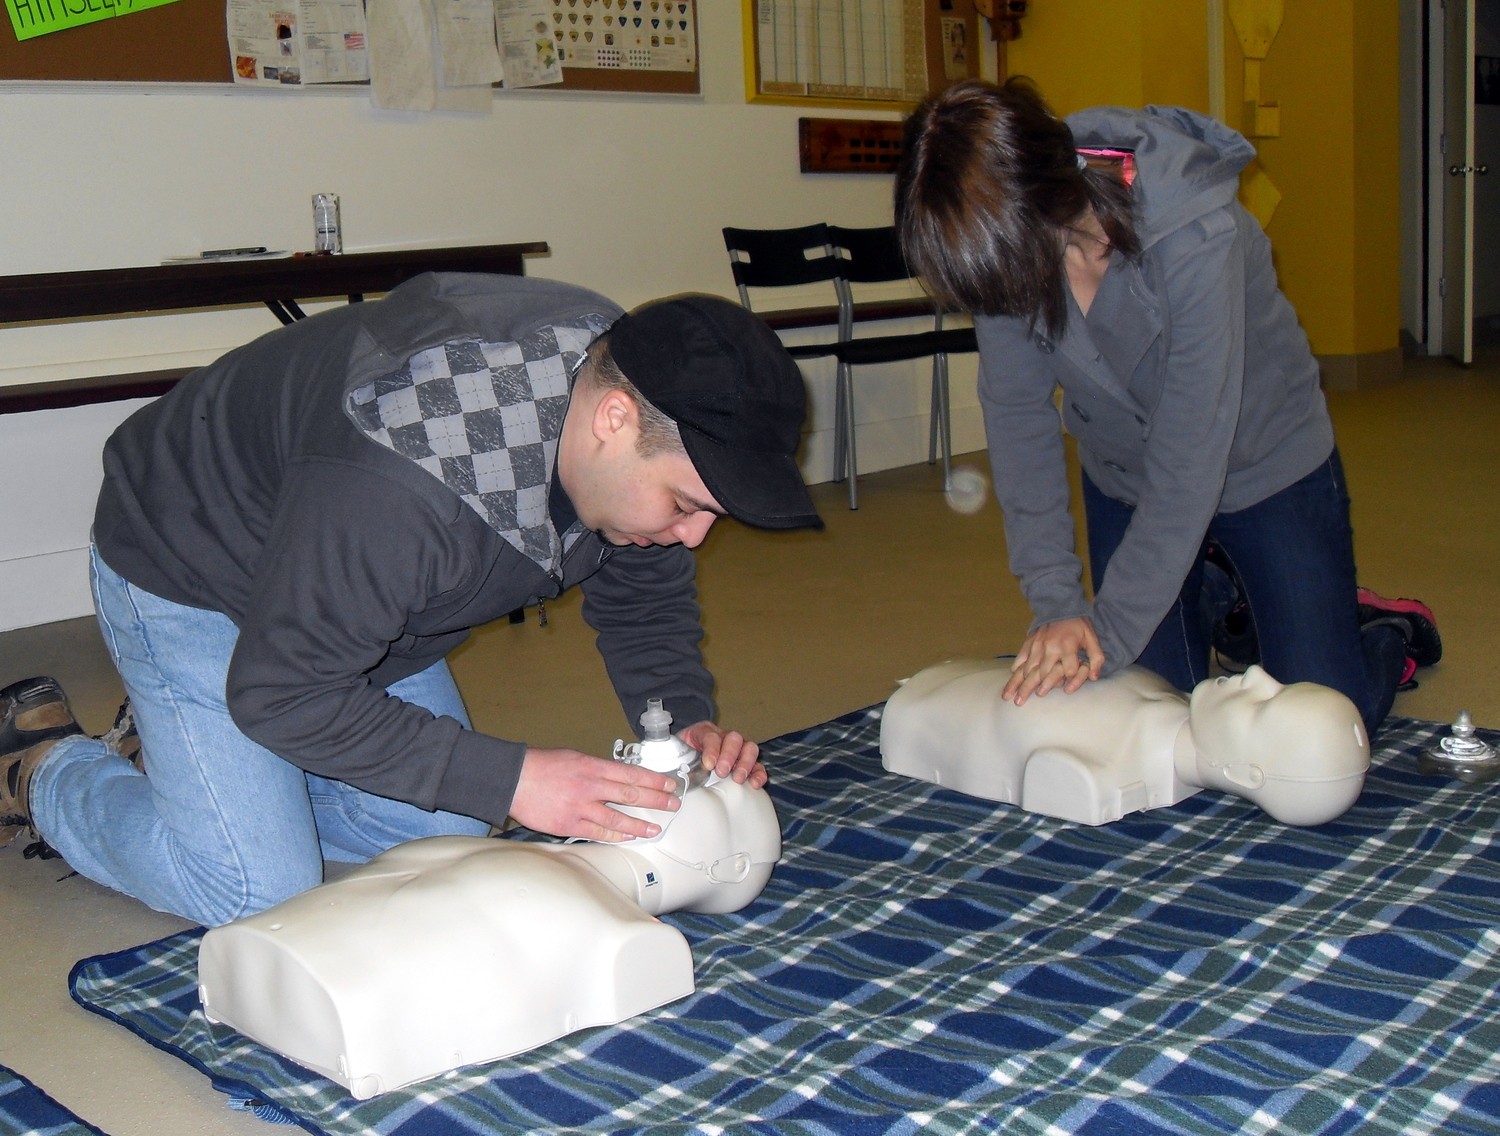 Re Certification Course For Standard First Aid Cpr Aed Level C